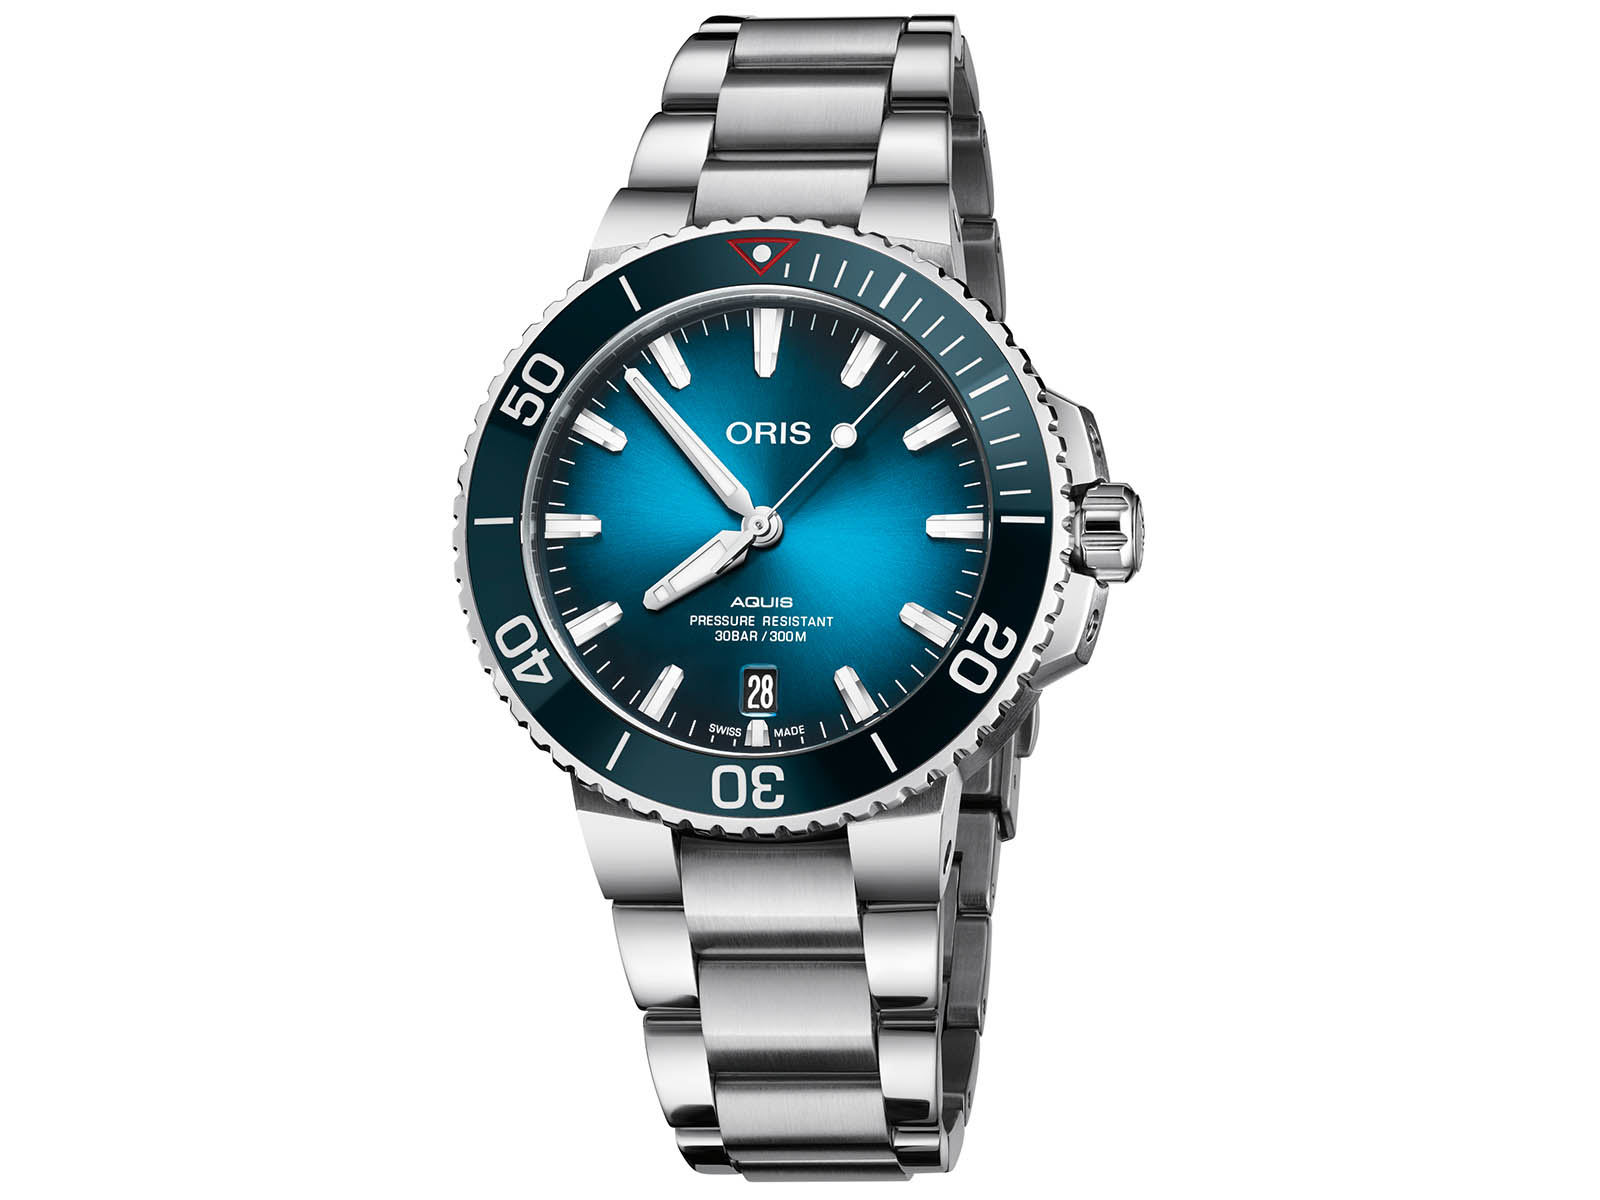 01-733-7732-4185-set-oris-clean-ocean-limited-edition-1.jpg